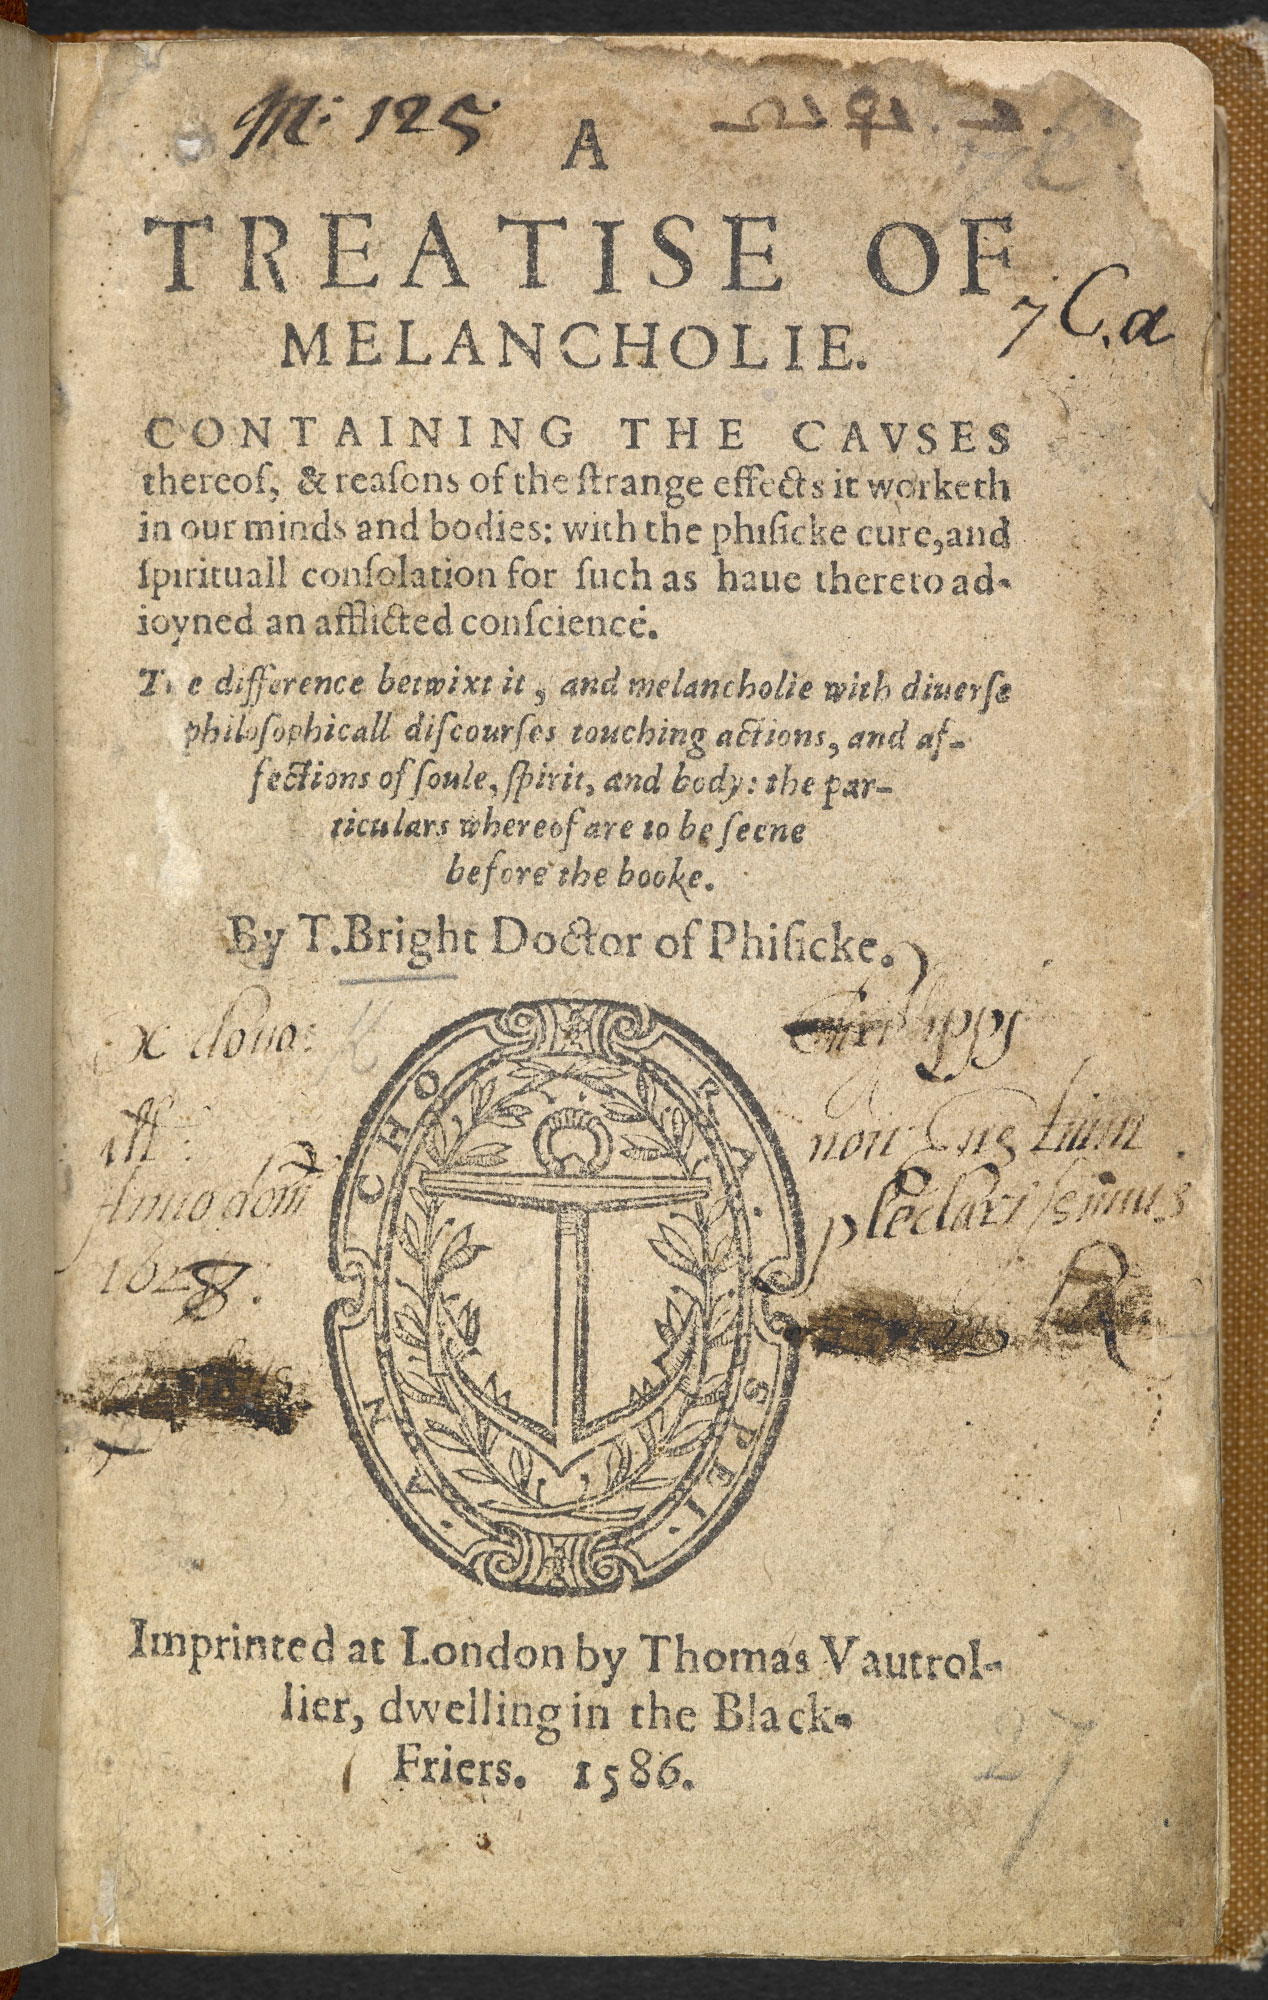 Bright's Treatise of Melancholy, 1586